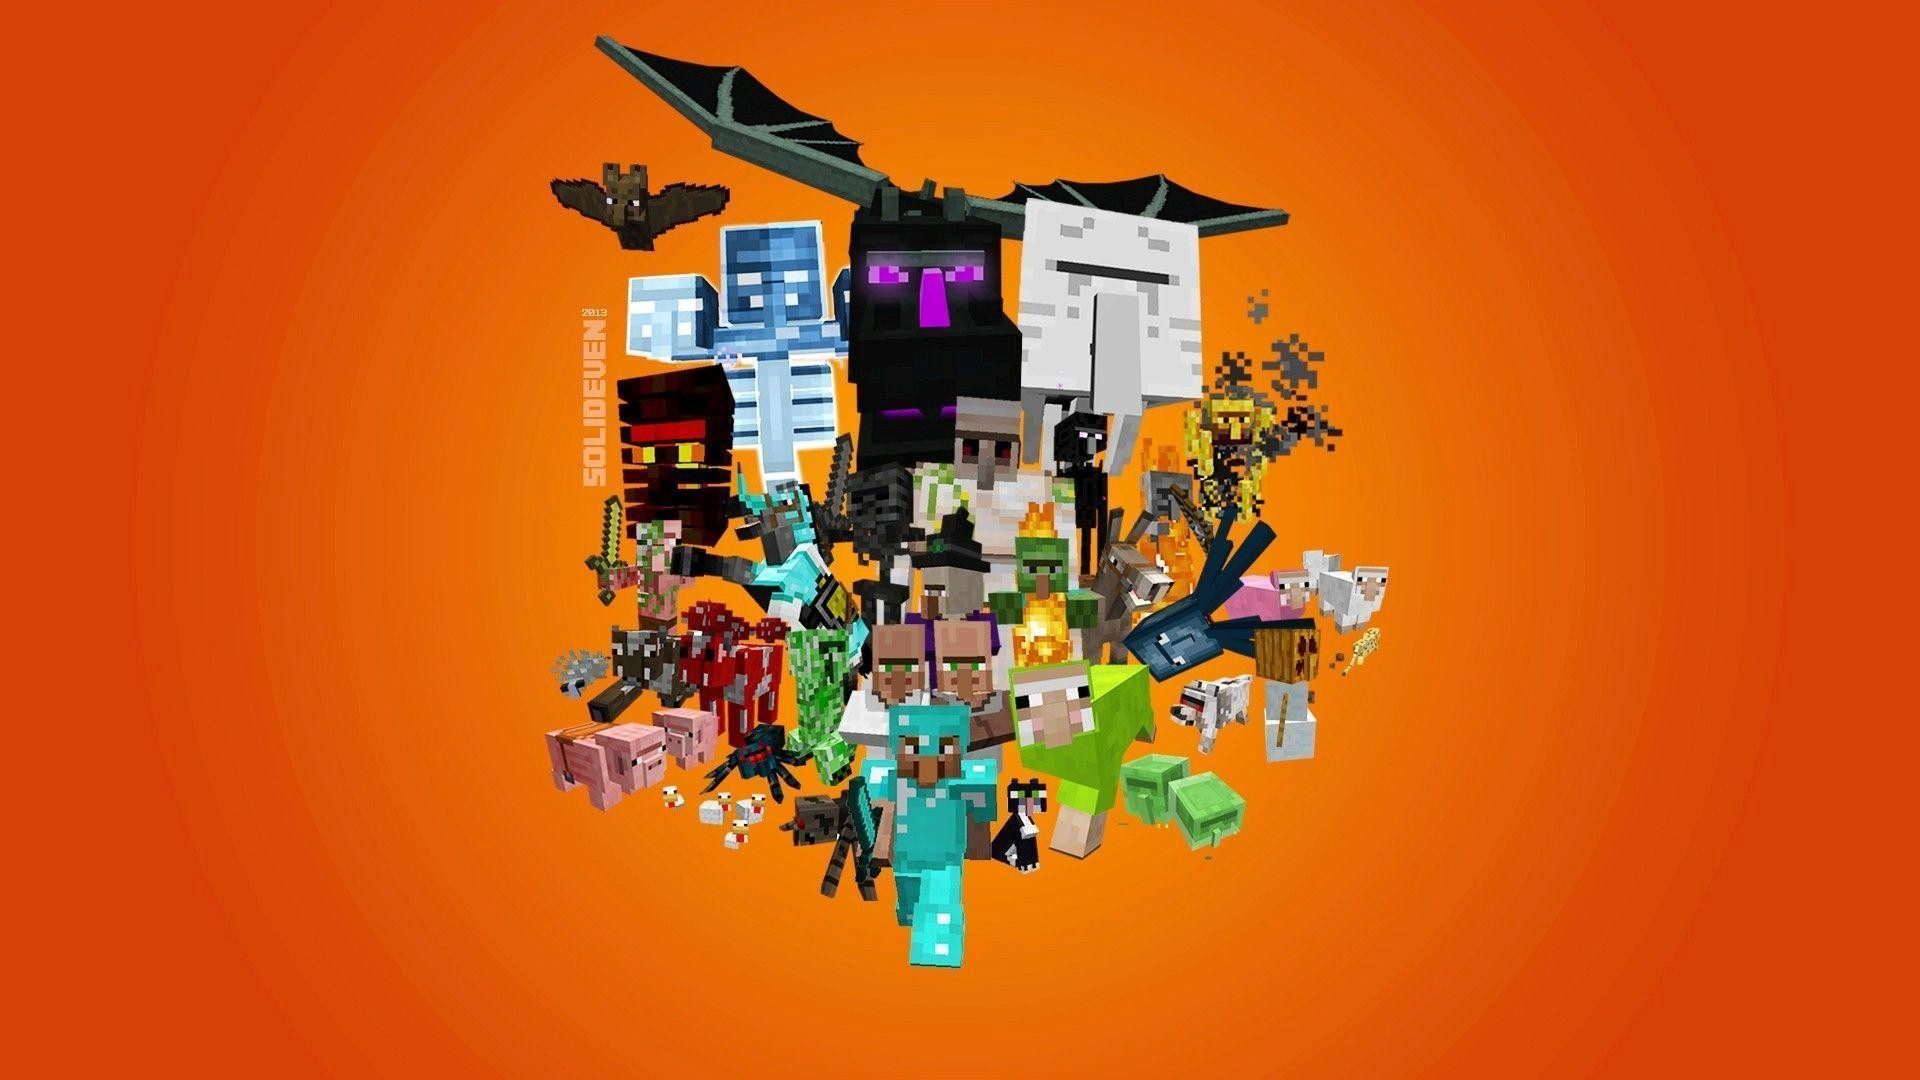 Wallpapers 2560x1440 Cars Minecraft Wallpaper Herobrine 78 Images